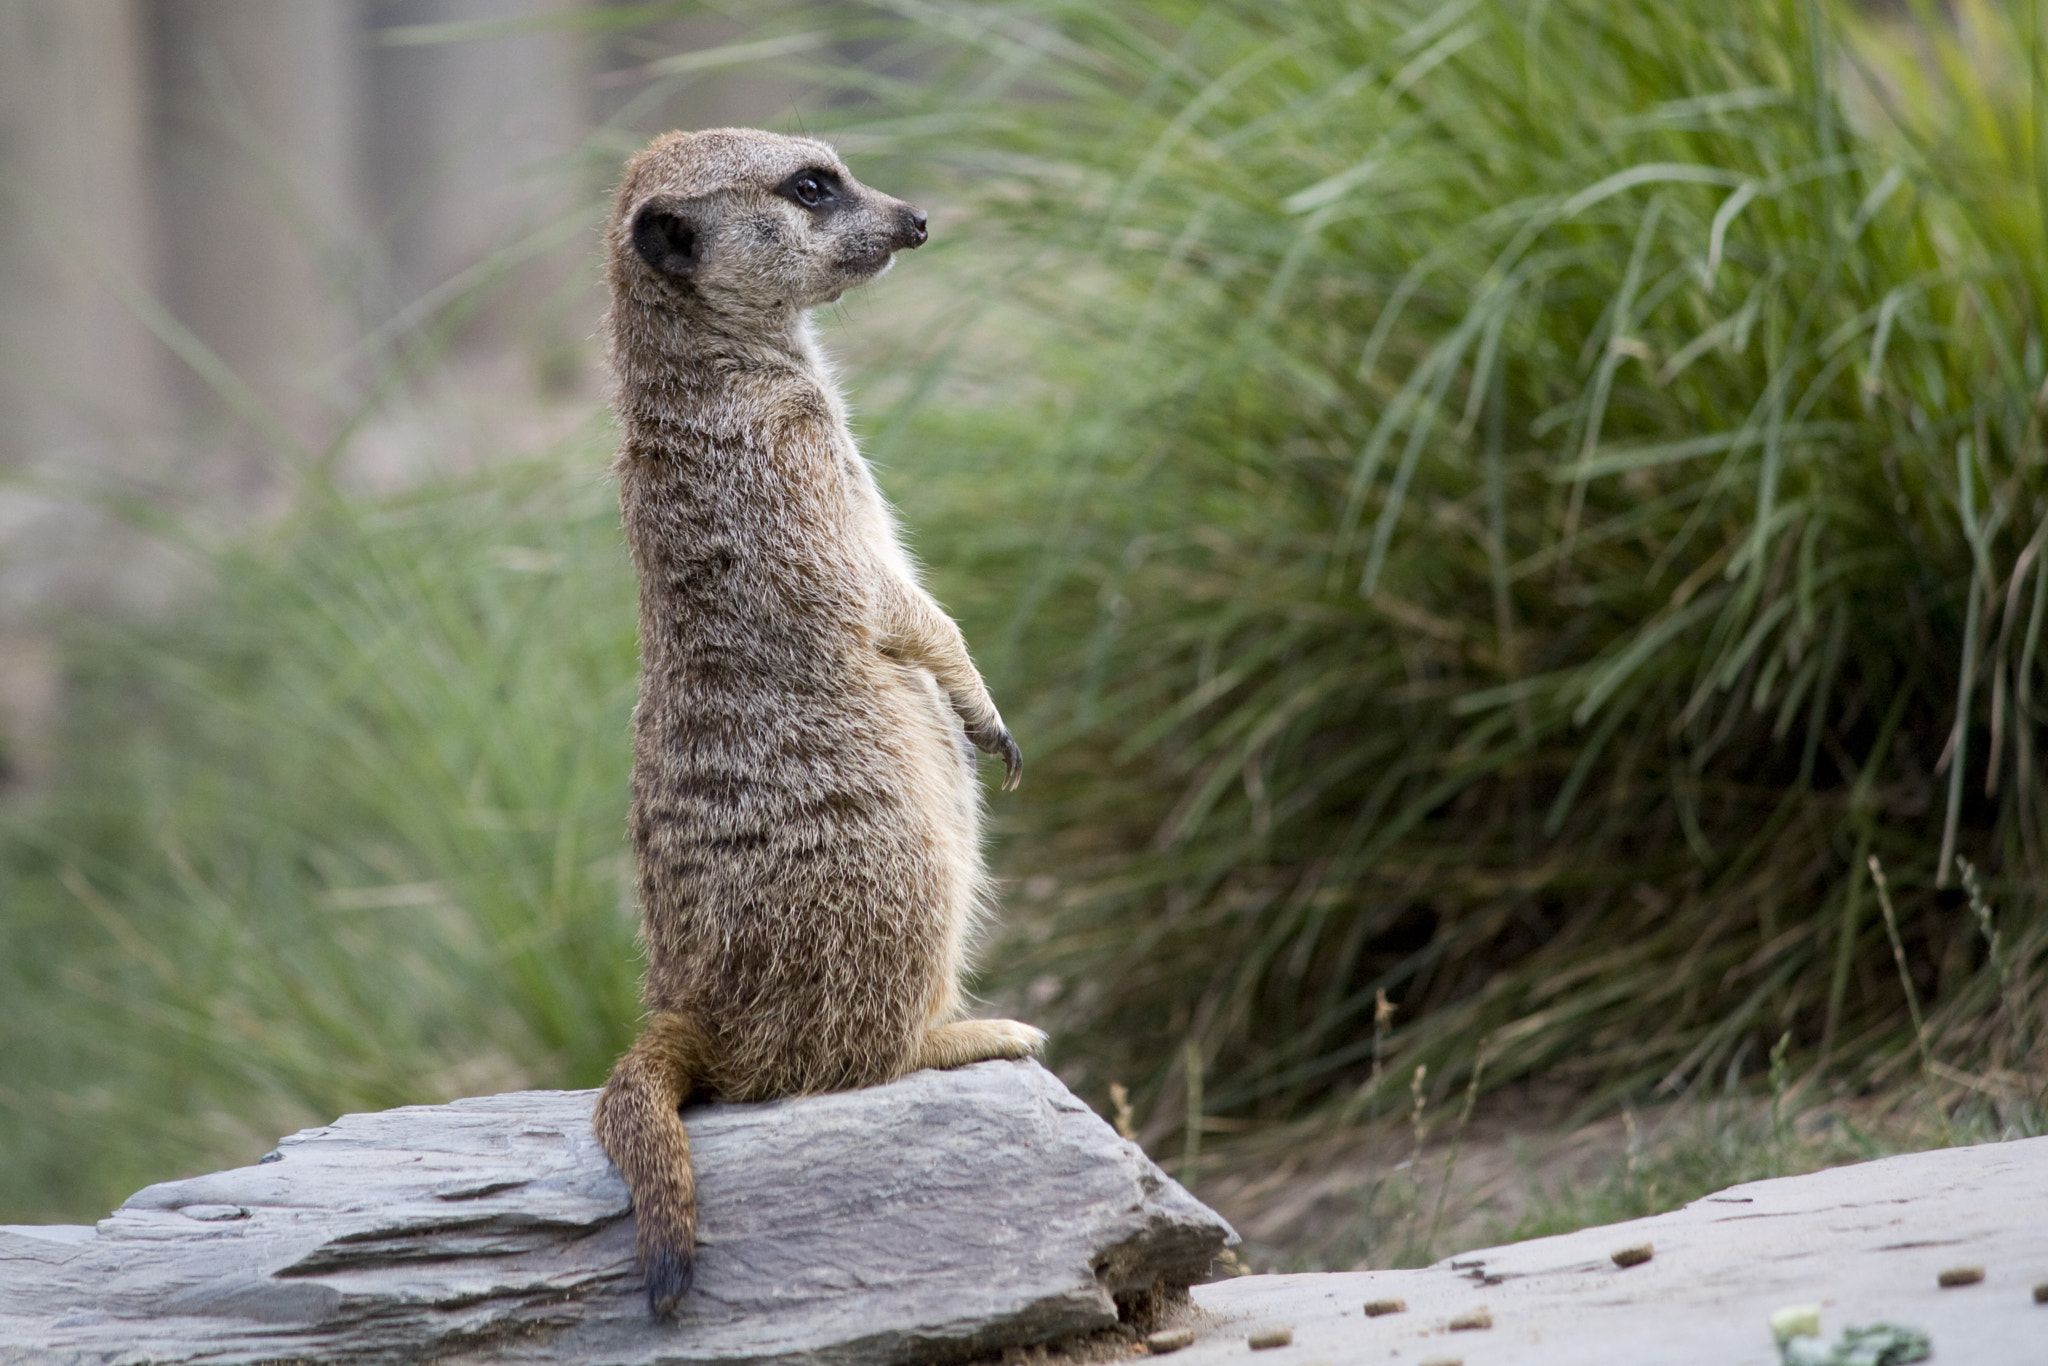 Photograph Meerkat standing by Sébastien Talbot on 500px